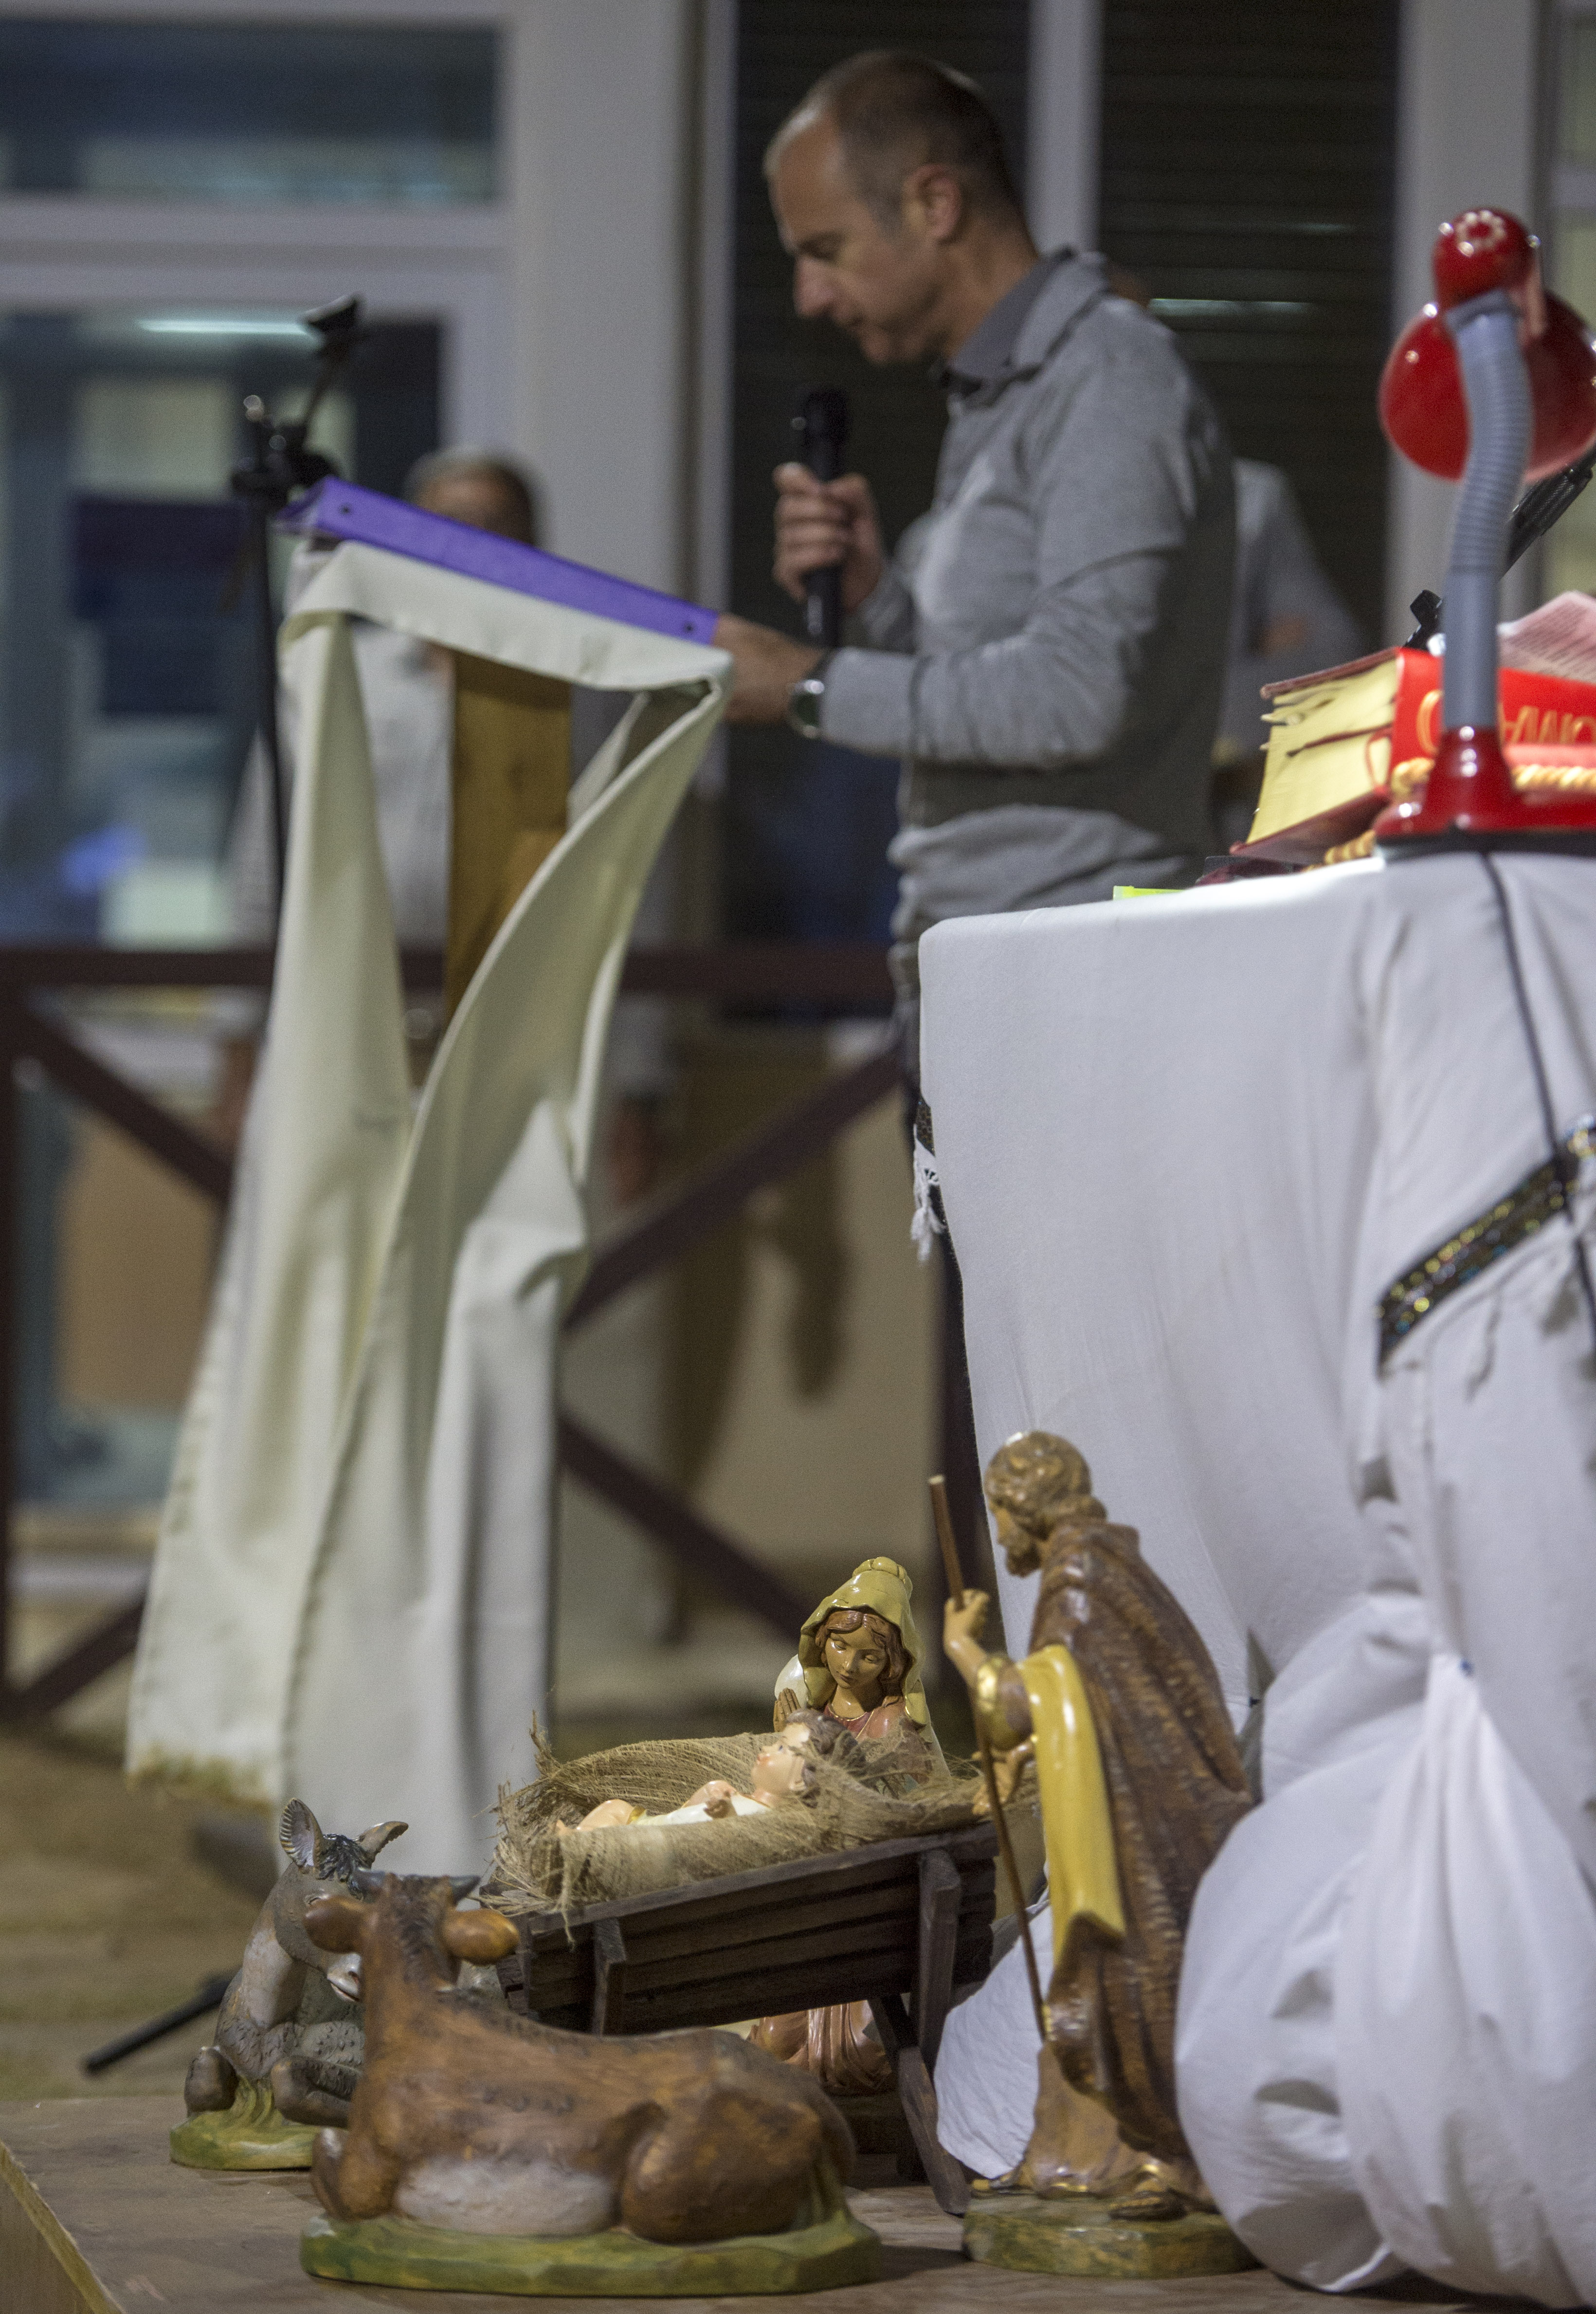 A nativity scene is displayed during a Christmas Eve service in Mogadishu, Somalia, Dec. 24, 2017. U.S. service members assigned to Combined Joint Task Force - Horn of Africa, along side service members from partner nations, are taking time to connect with each other and with family members back home as they head into the new year, continuing their dedication to protecting the U.S. and strengthening relationships with partnered nations. (U.S. Air Force photo by Staff Sgt. Timothy Moore)